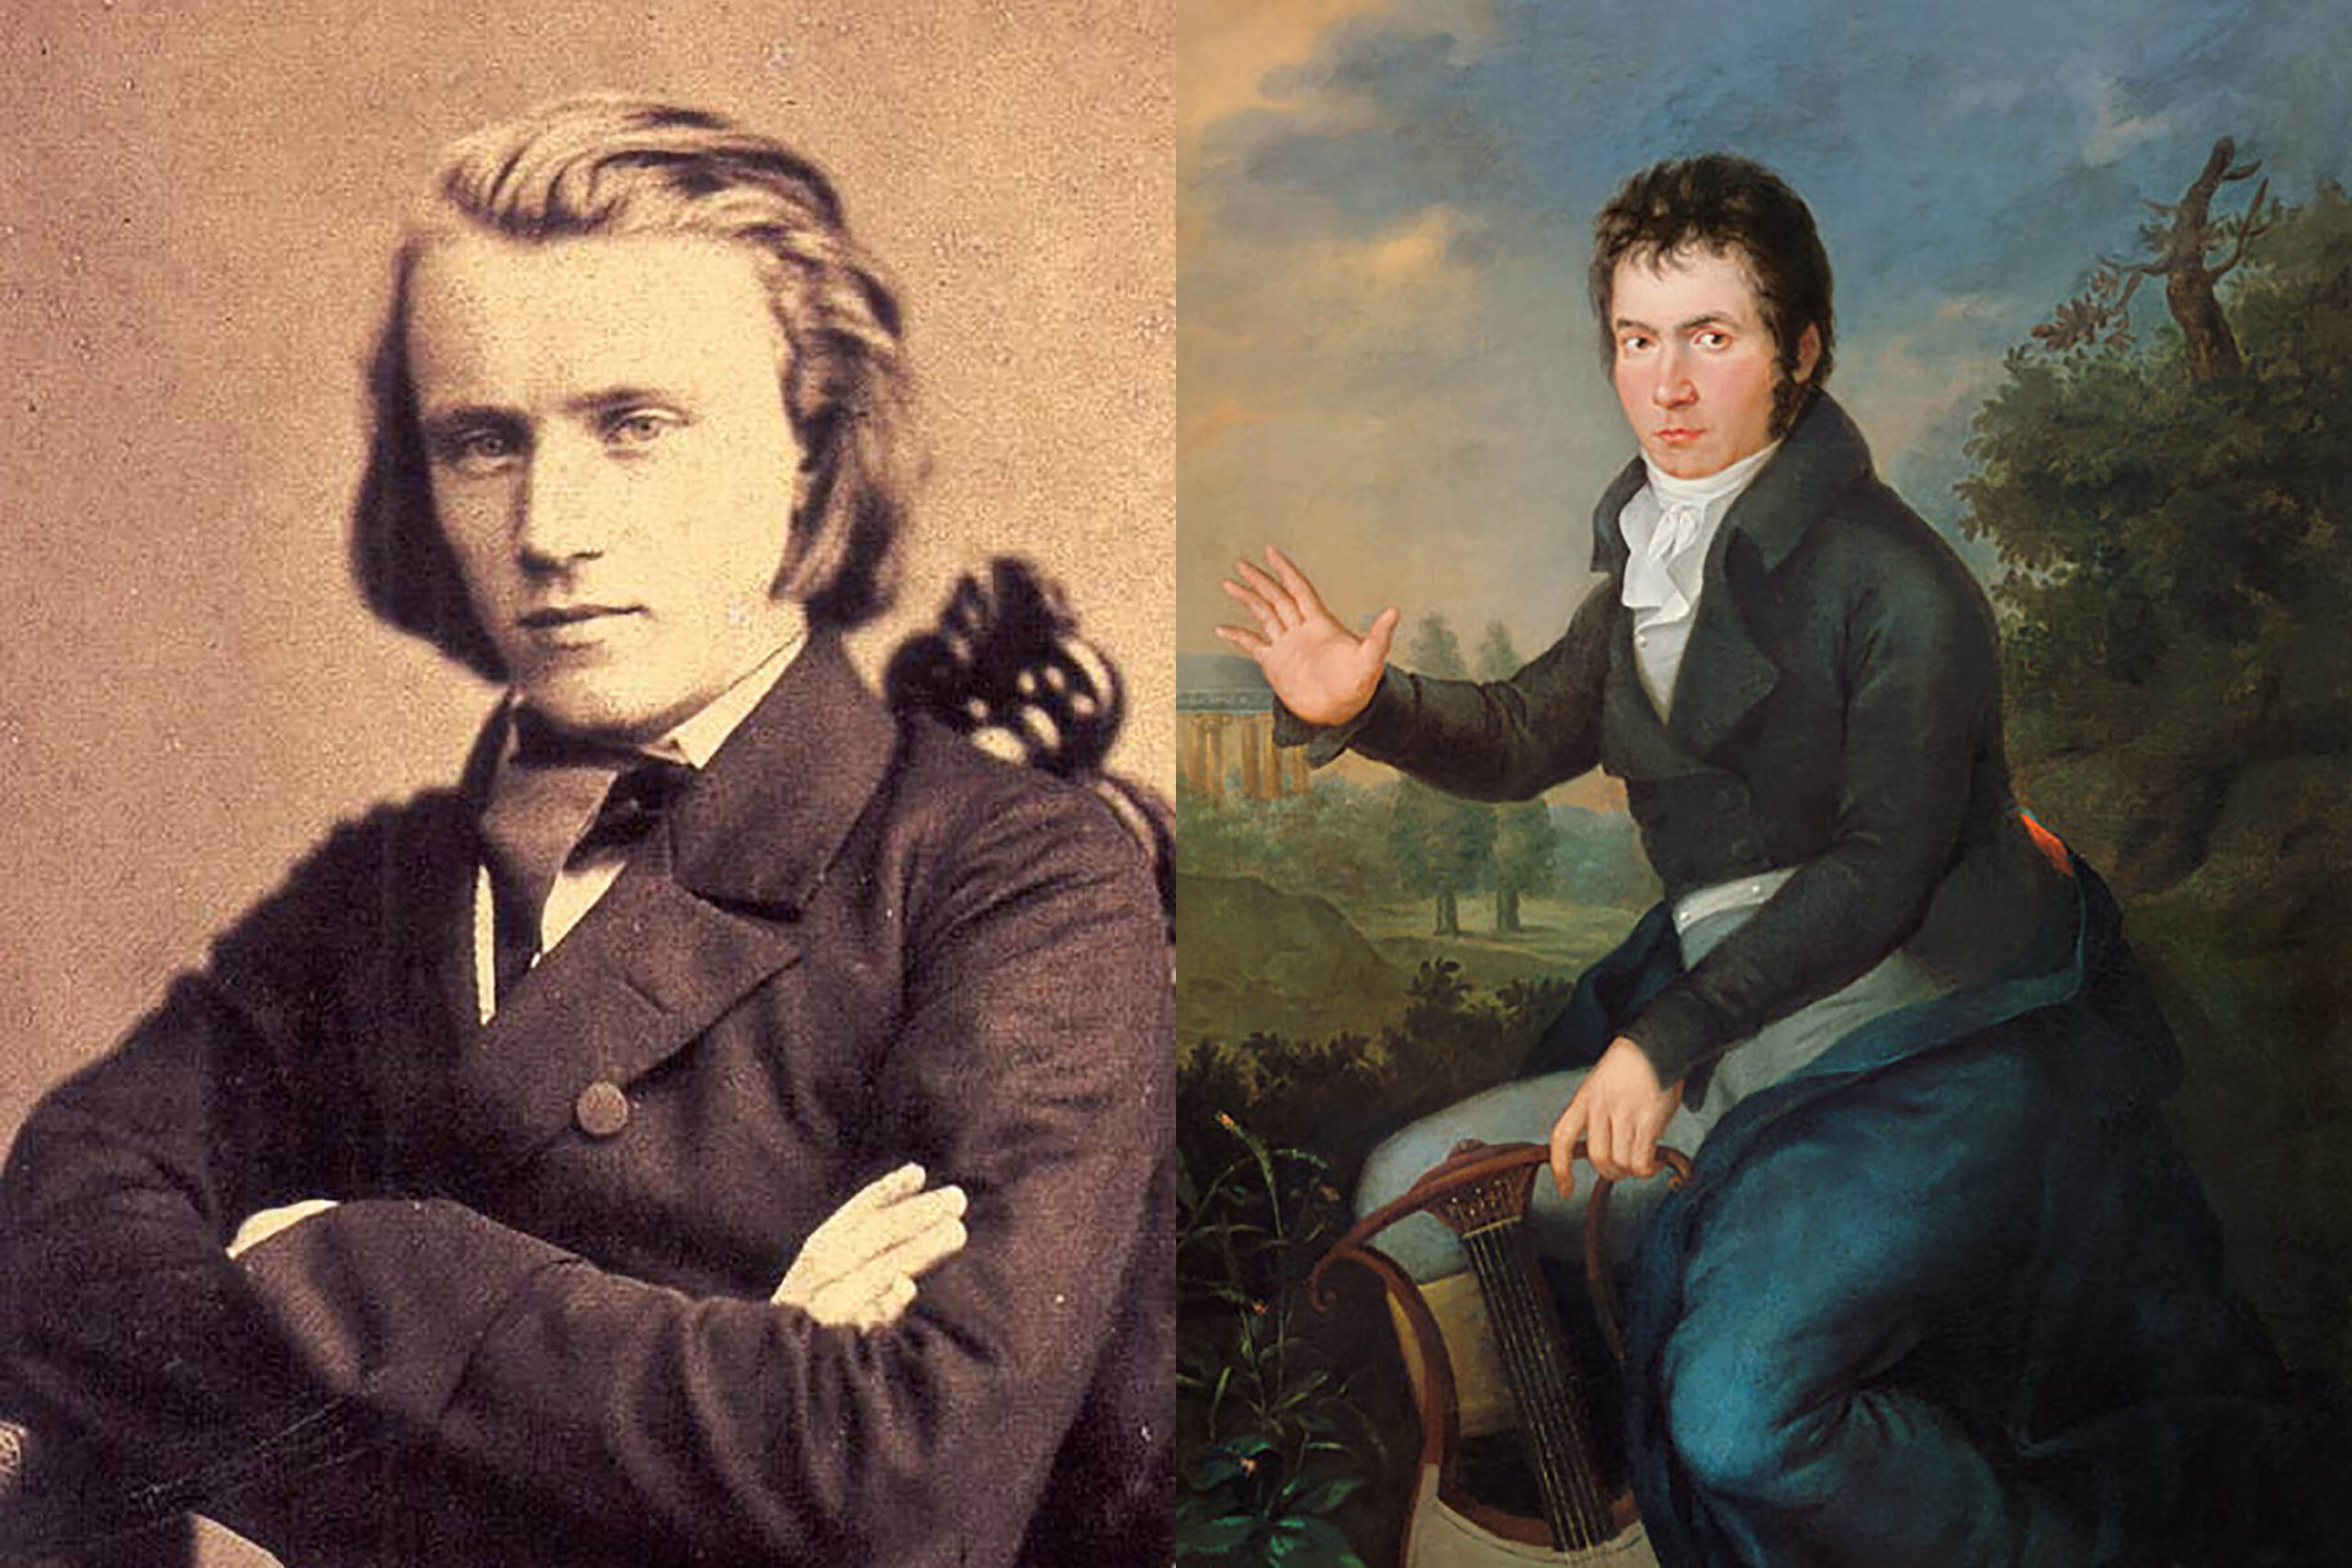 Brahms and Beethoven